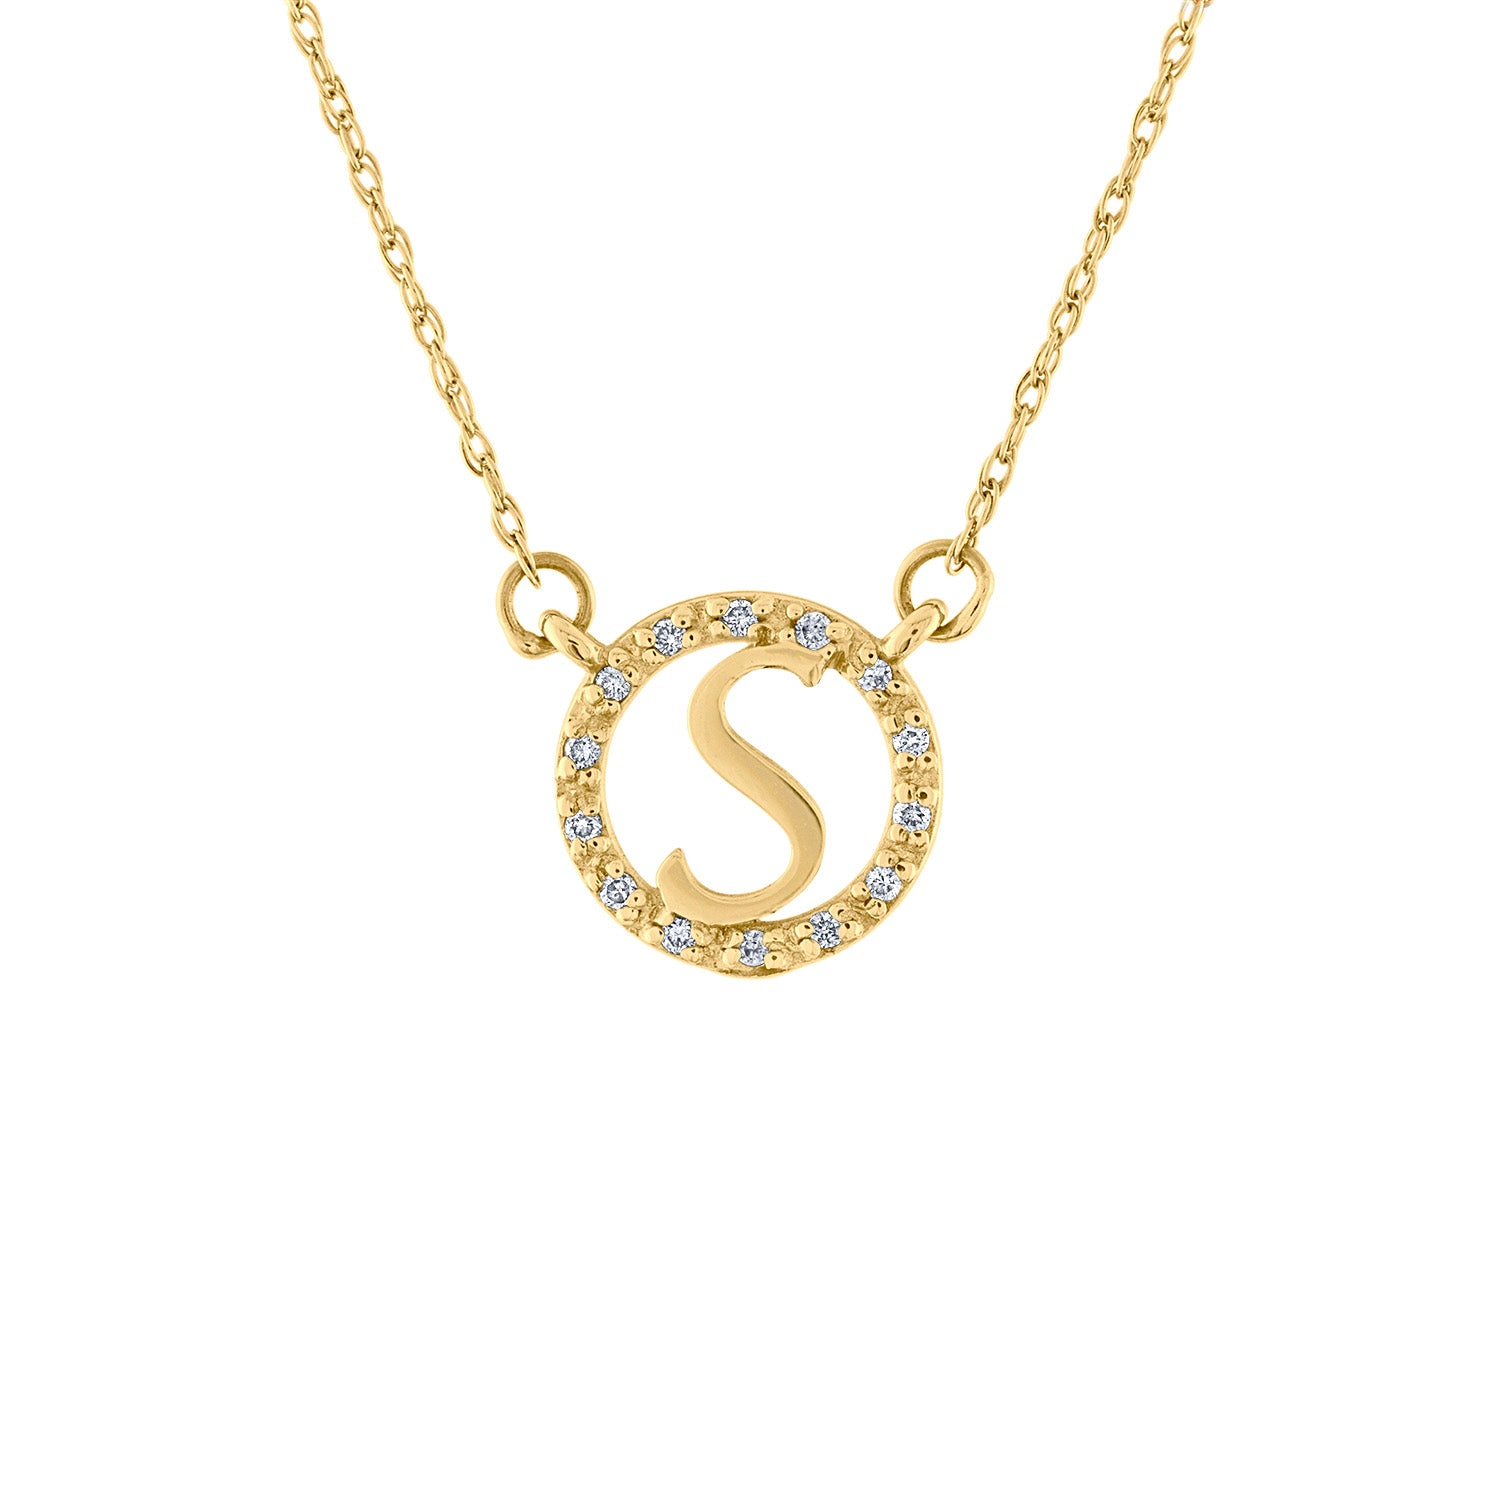 14KT GOLD DIAMOND BORDER INITIAL NECKLACE